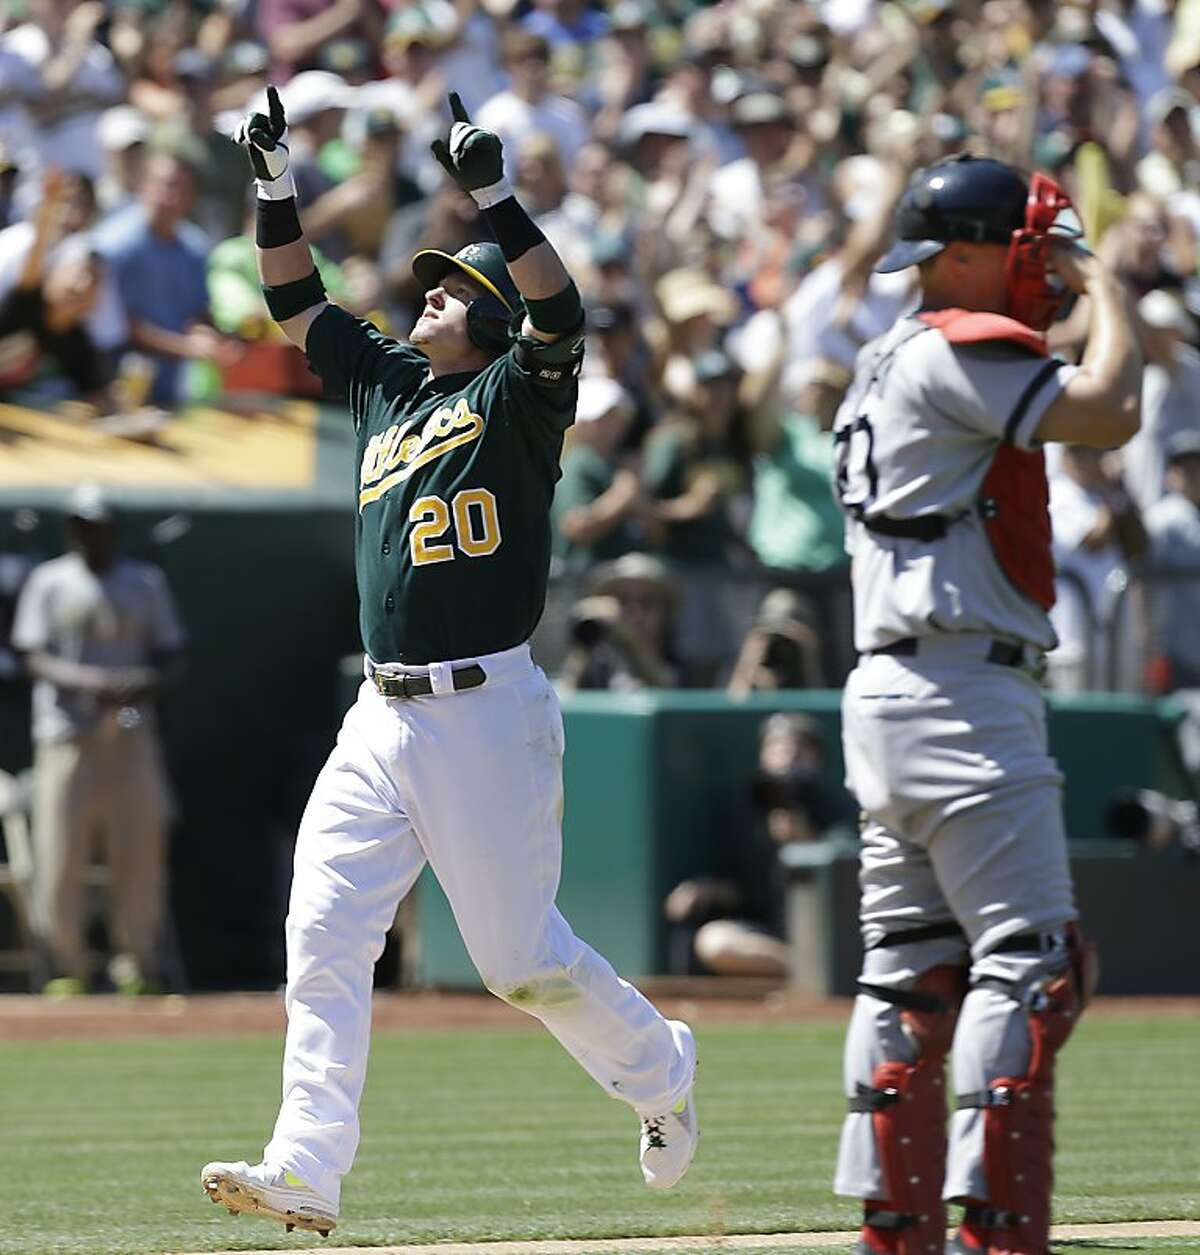 Oakland Athletics' Josh Donaldson (20) celebrates after hitting a two-run home run off Boston Red Sox's Brandon Workman in the seventh inning of a baseball game Sunday, July 14, 2013, in Oakland, Calif. (AP Photo/Ben Margot)